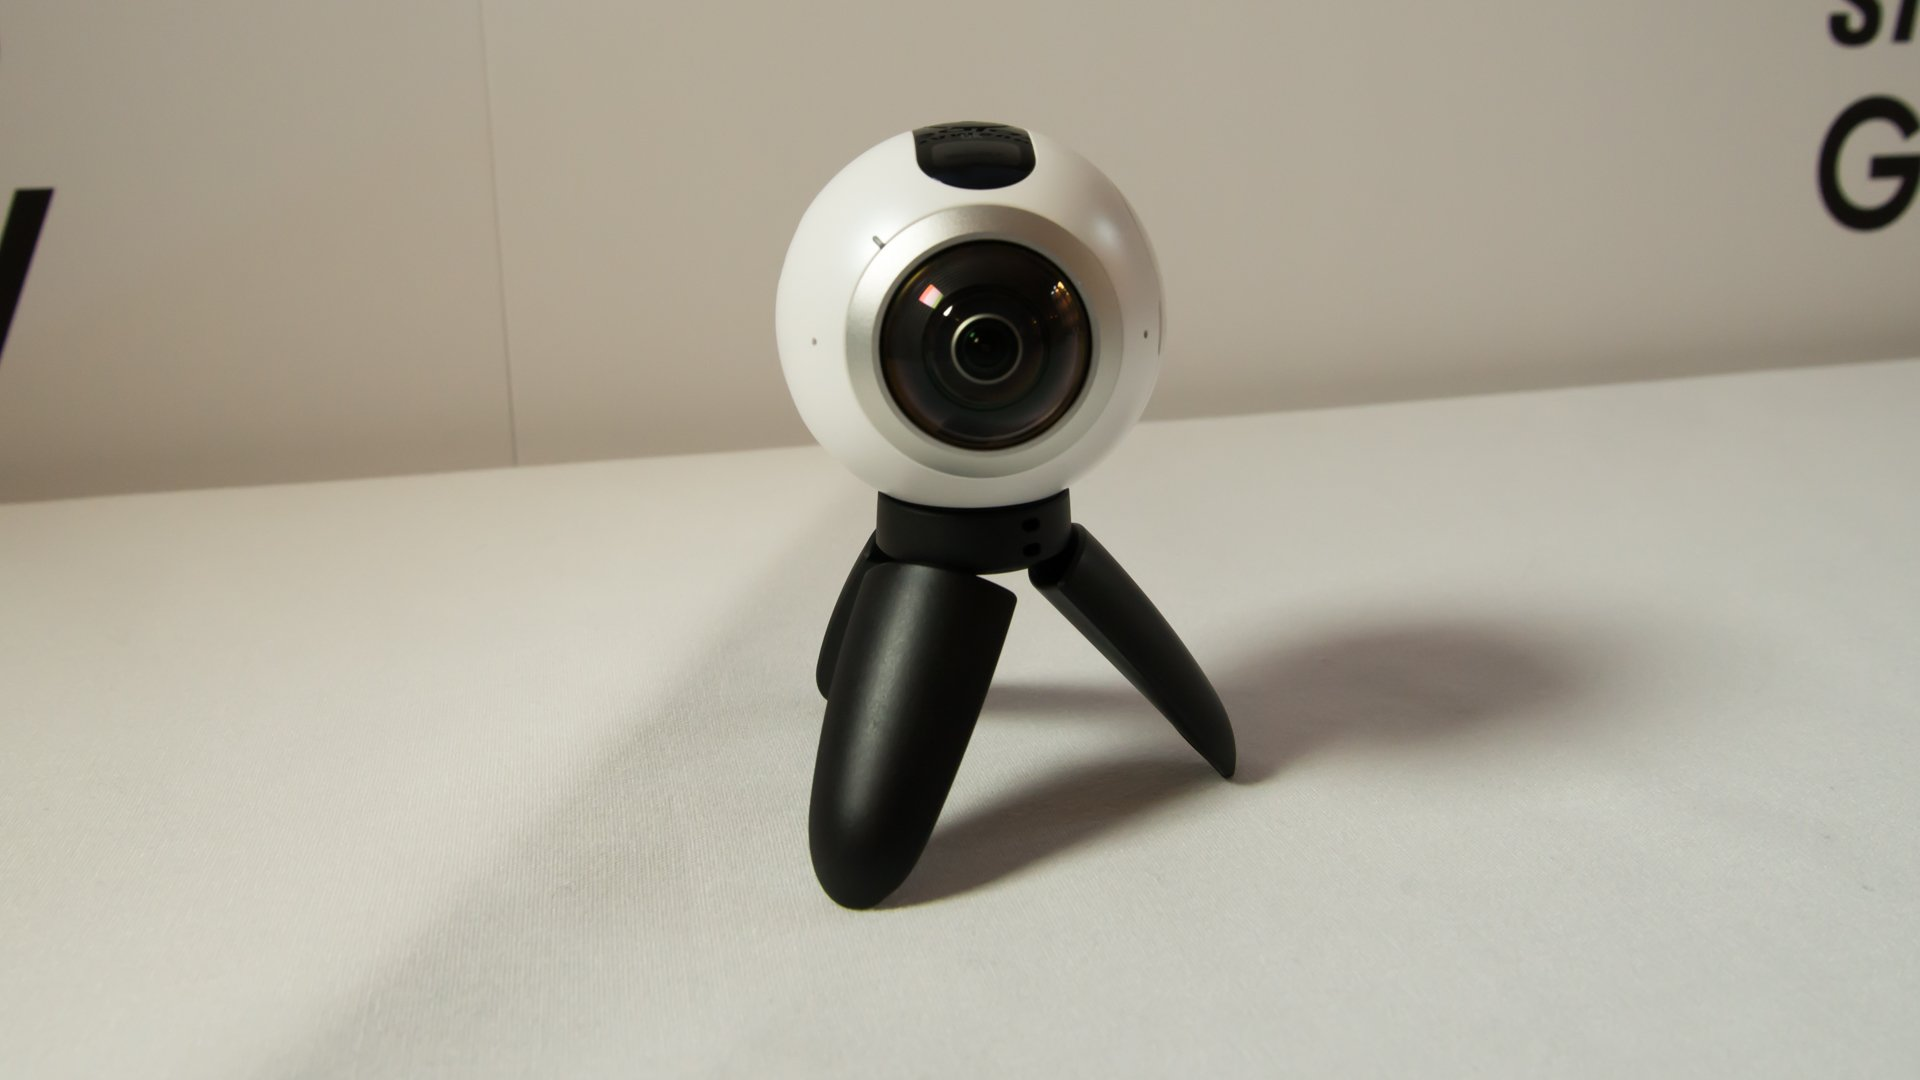 Samsung Gear 360 review - hands on with the VR camera, UK